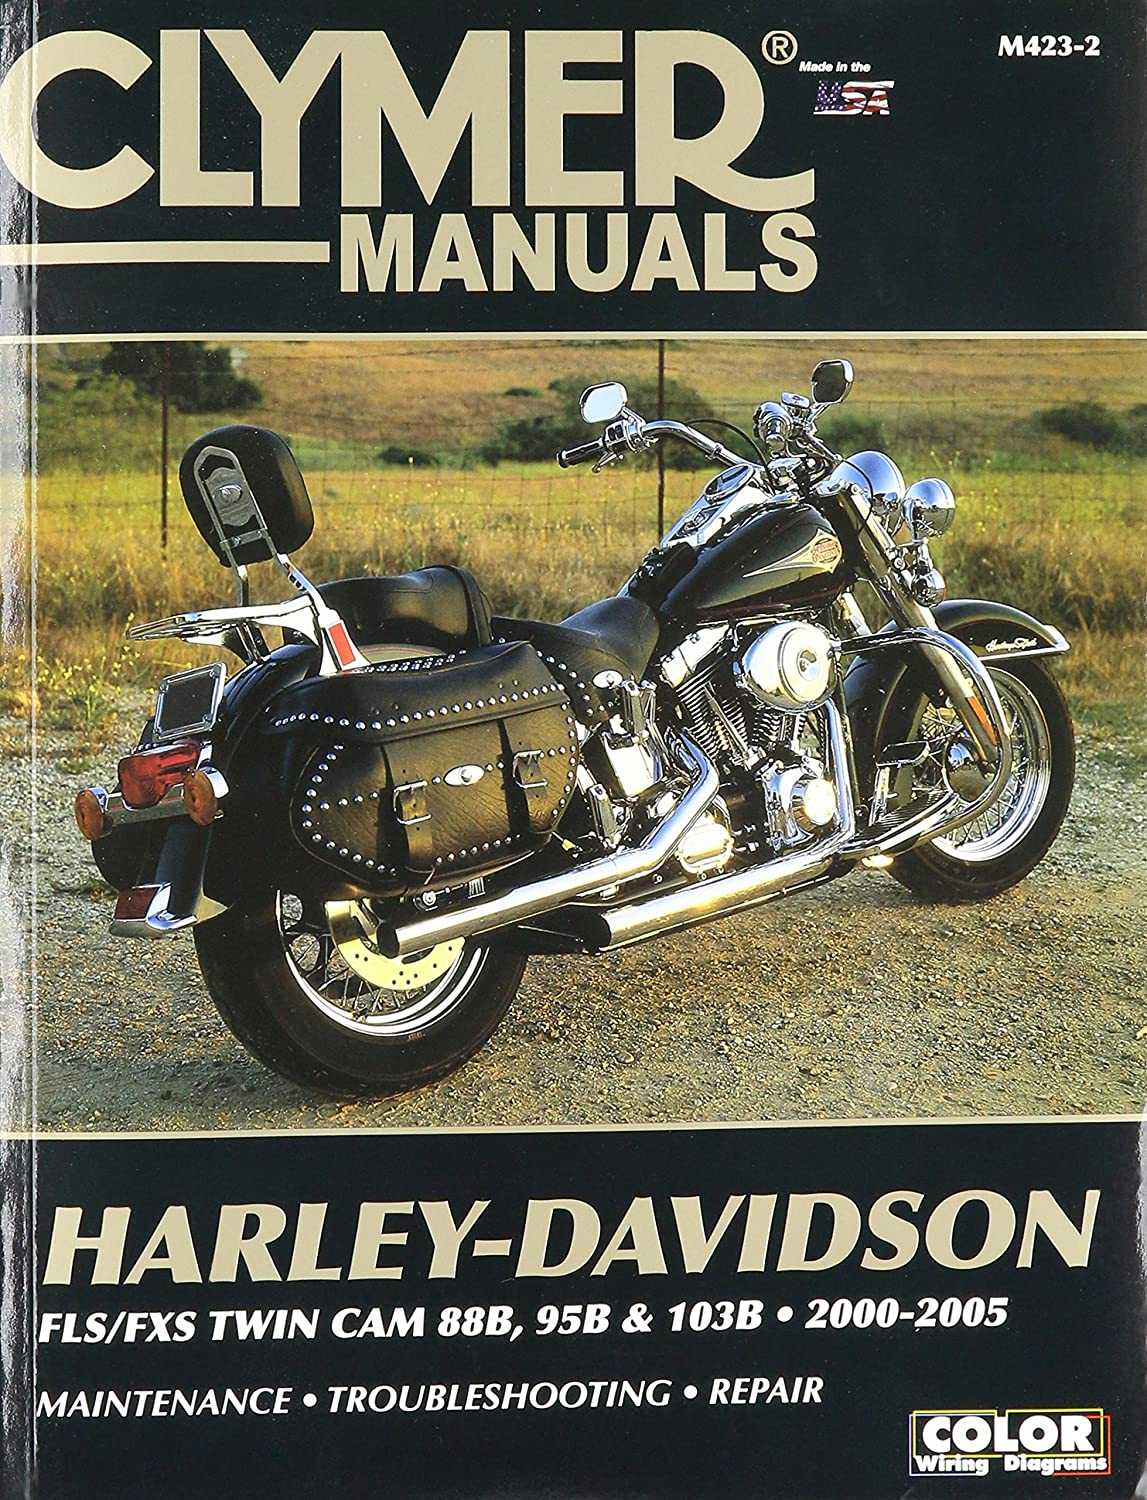 Clymer Repair Manual for Harley Softail Twin Cam 88 00-05 on